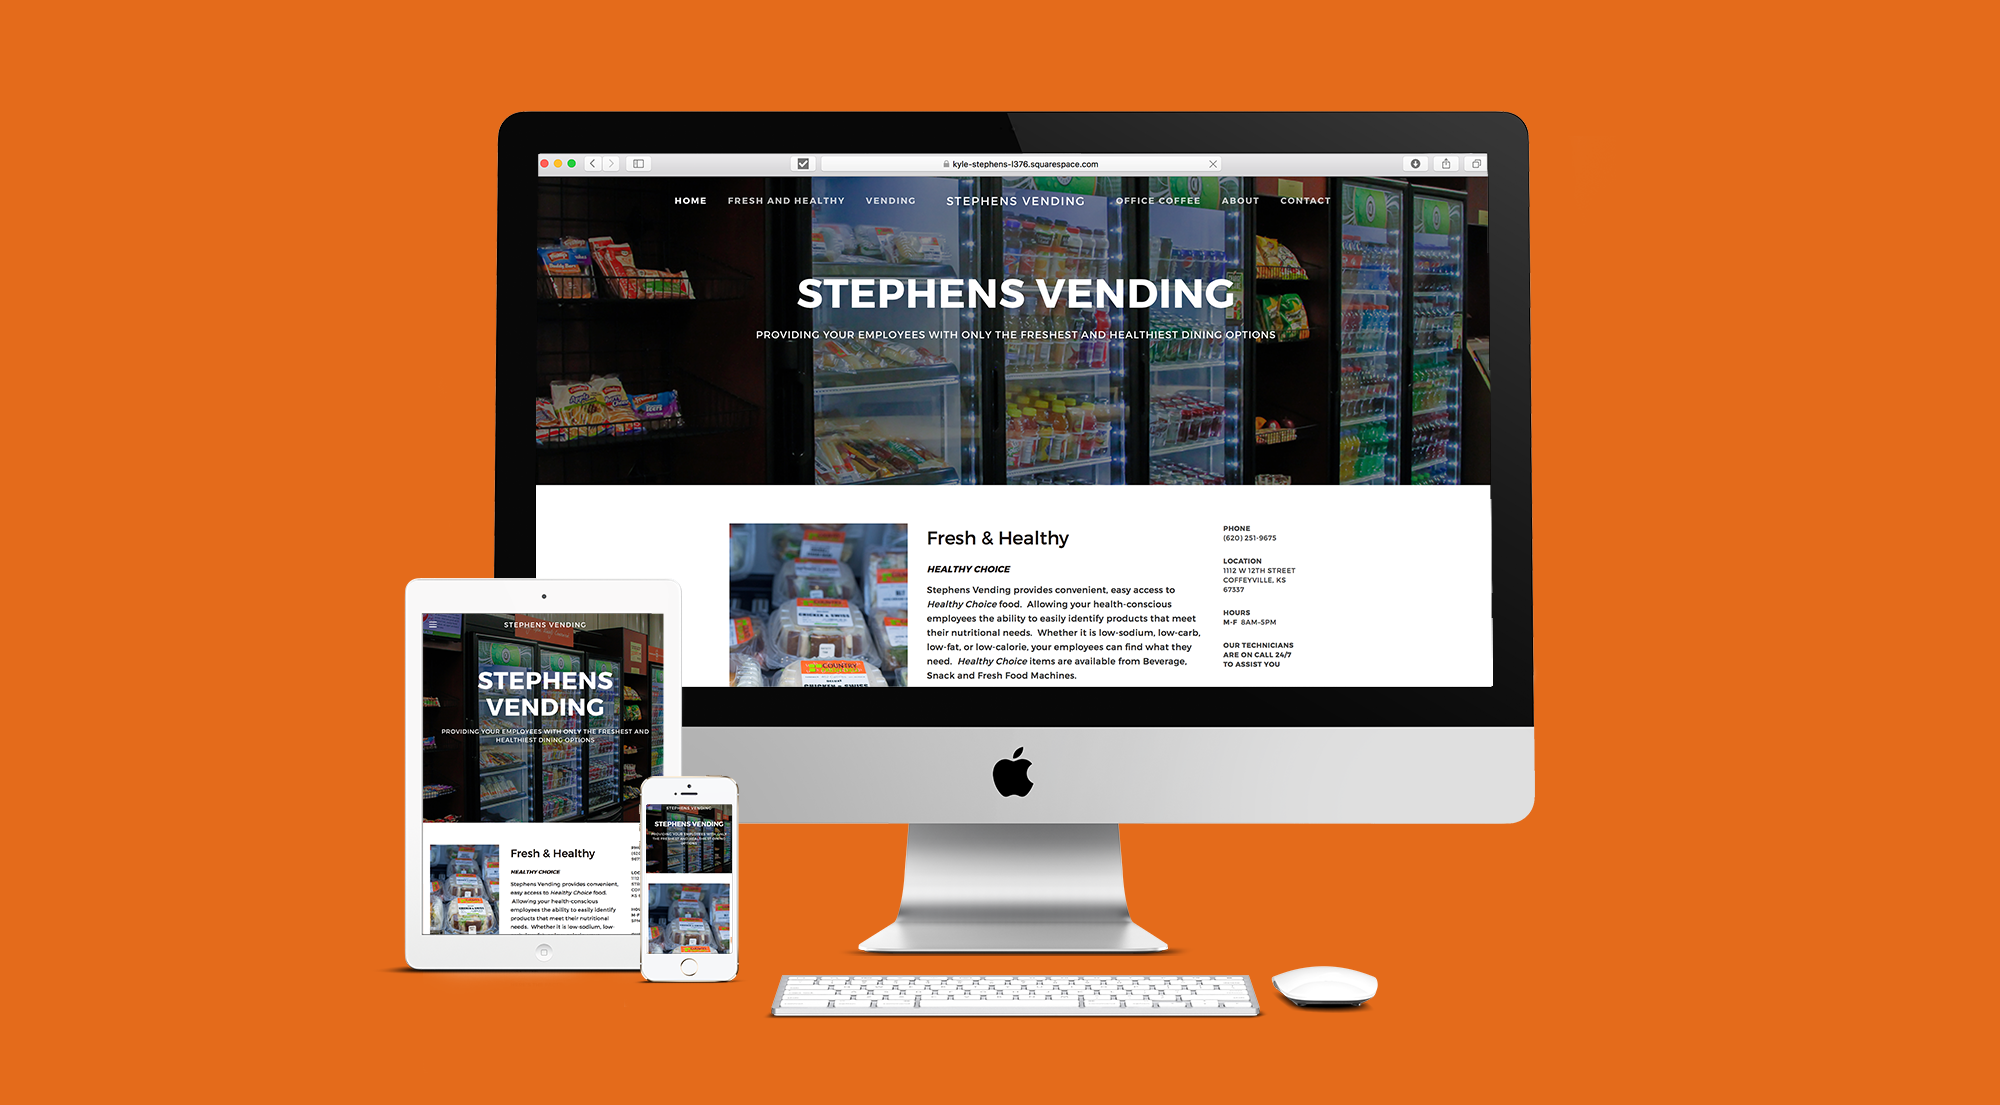 Website design that showcases a business with great stock photography and visual images.